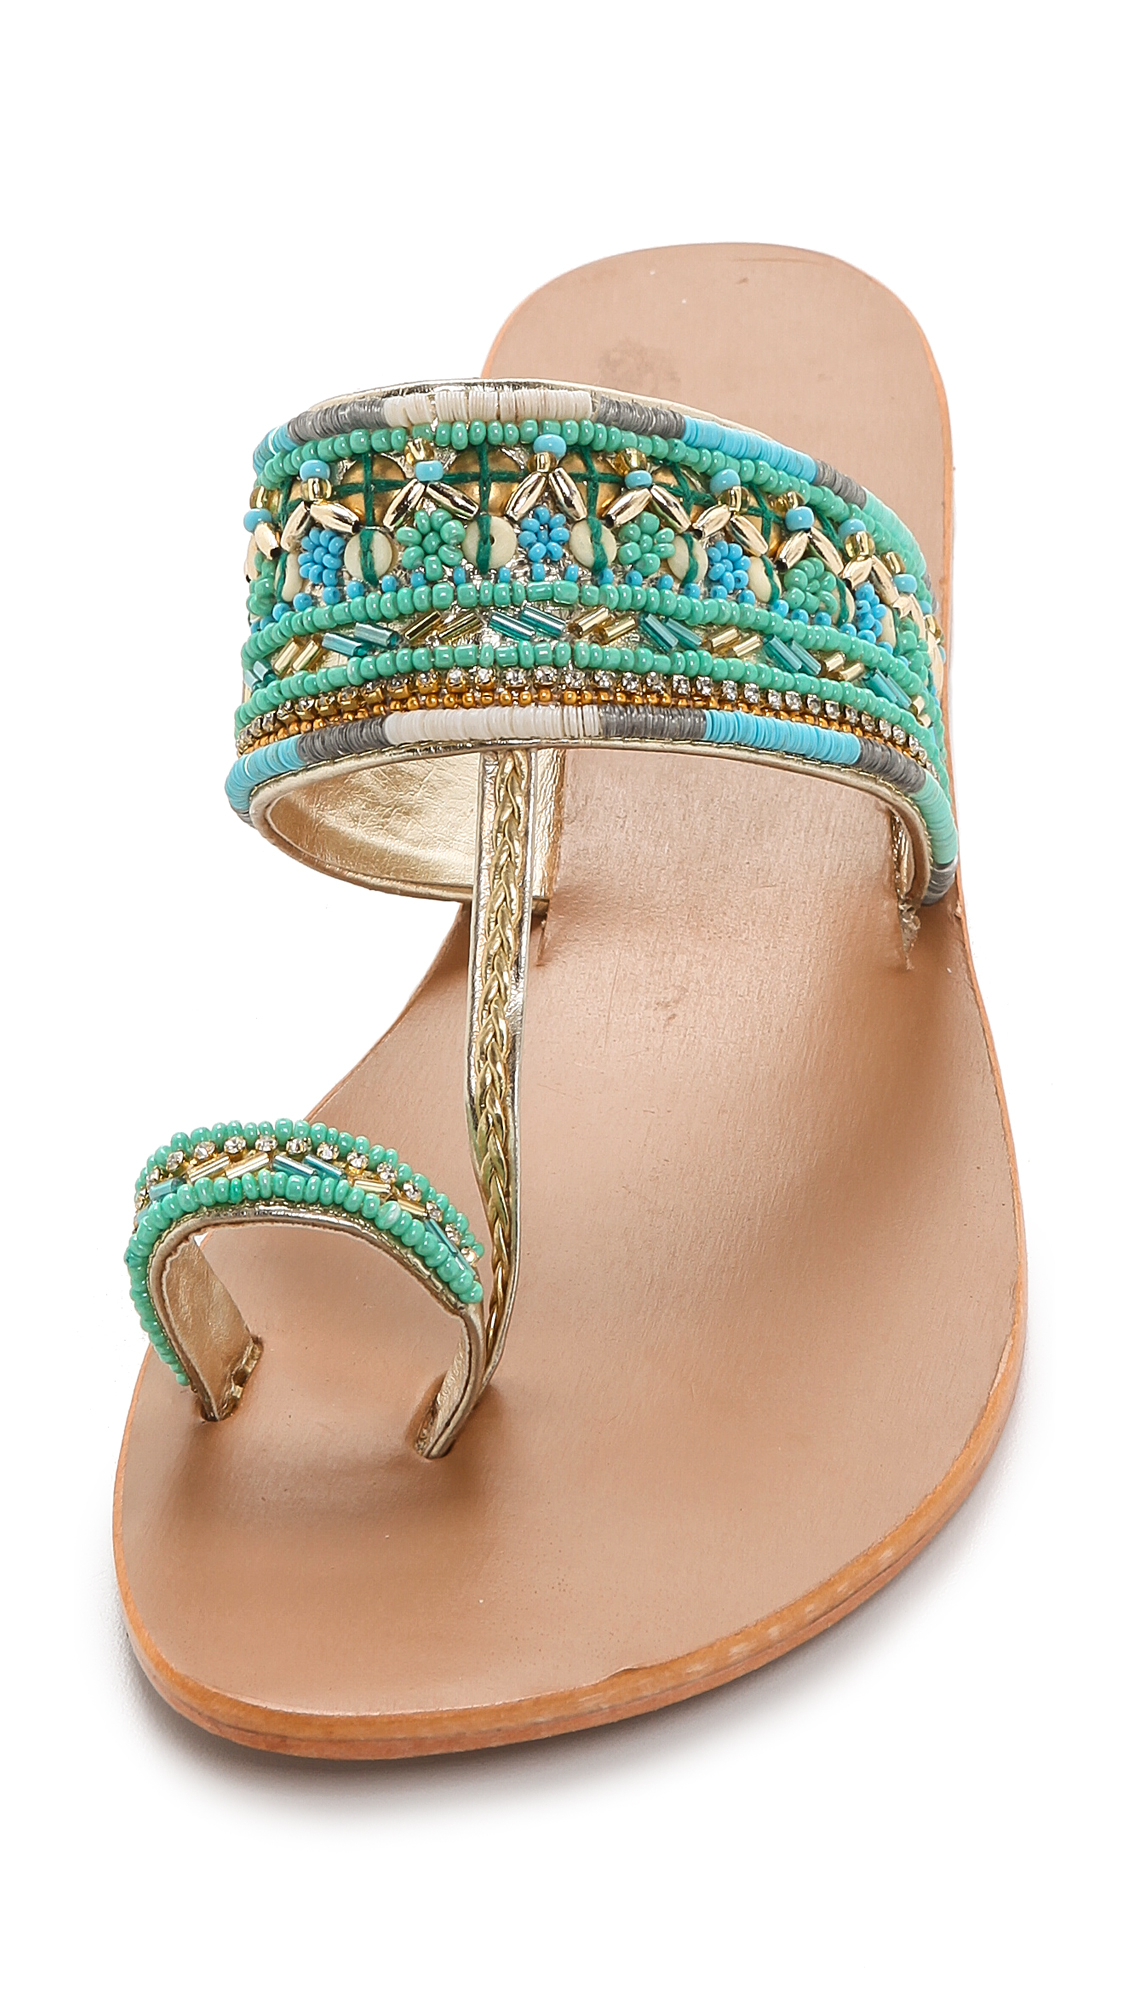 24a06fd0e Lyst - Star Mela Sabri Beaded Sandals - Turquoise in Blue